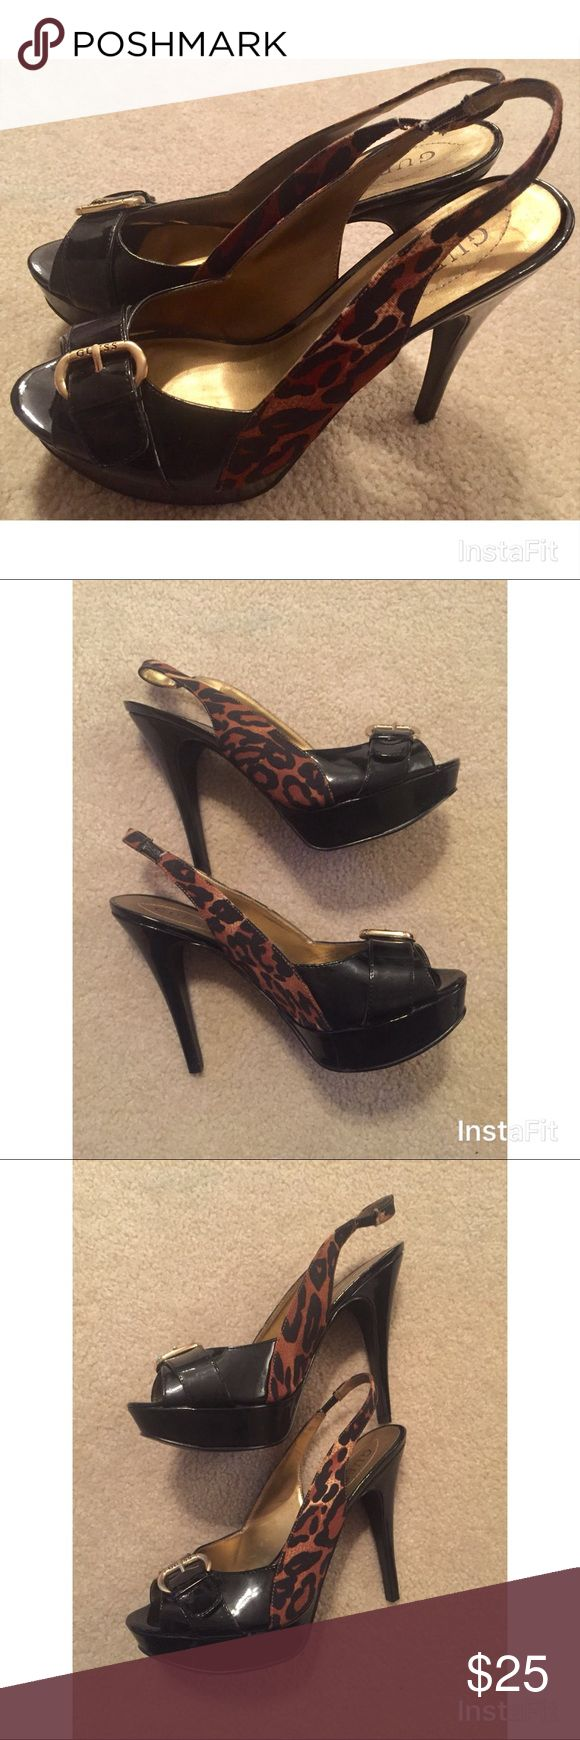 Guess Animal Print High Heels -Excellent Used Condition  -Animal Print Heels with Buckles at Toes -Size 8M Guess Shoes Heels